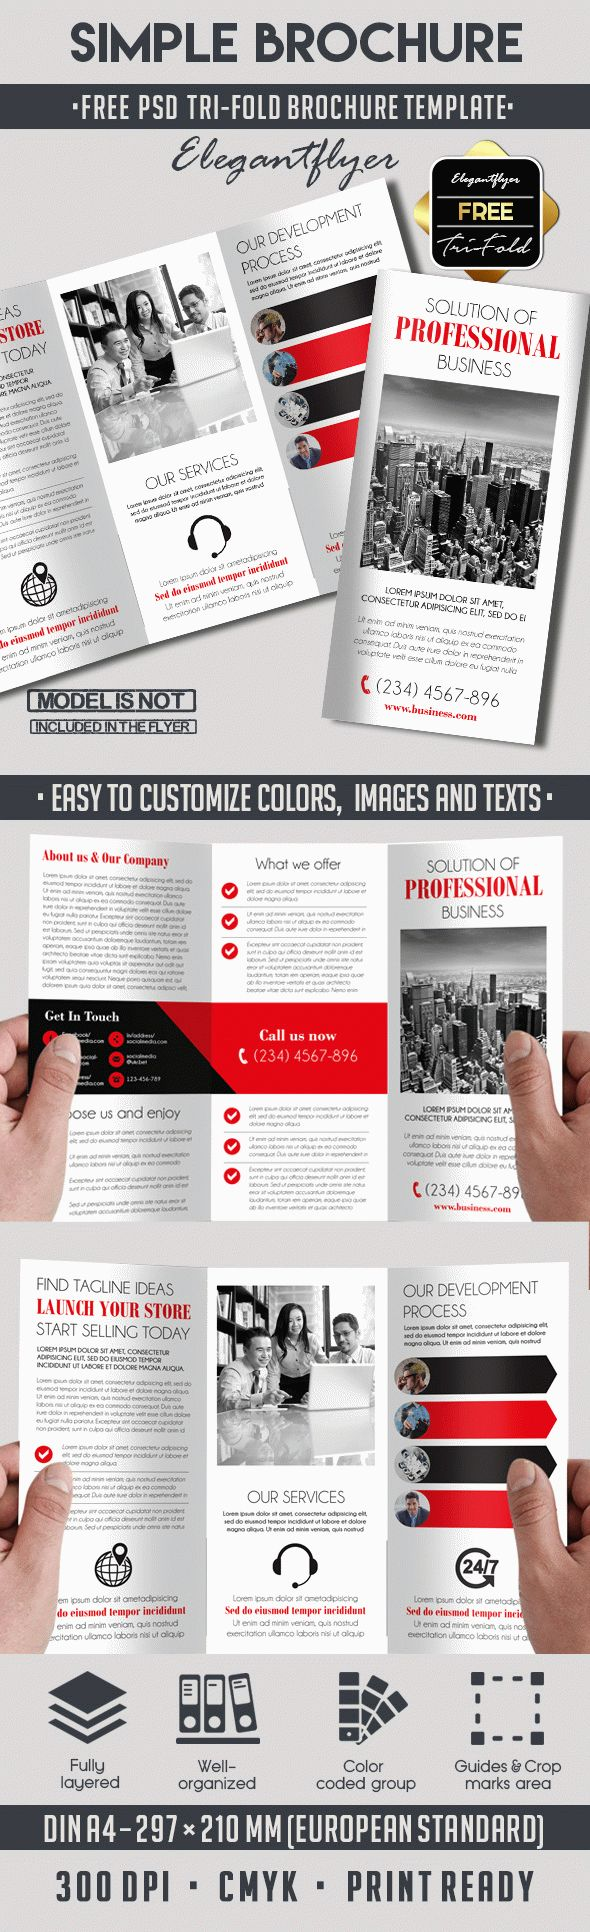 Simple free tri fold psd brochure template by elegantflyer for Free online tri fold brochure template